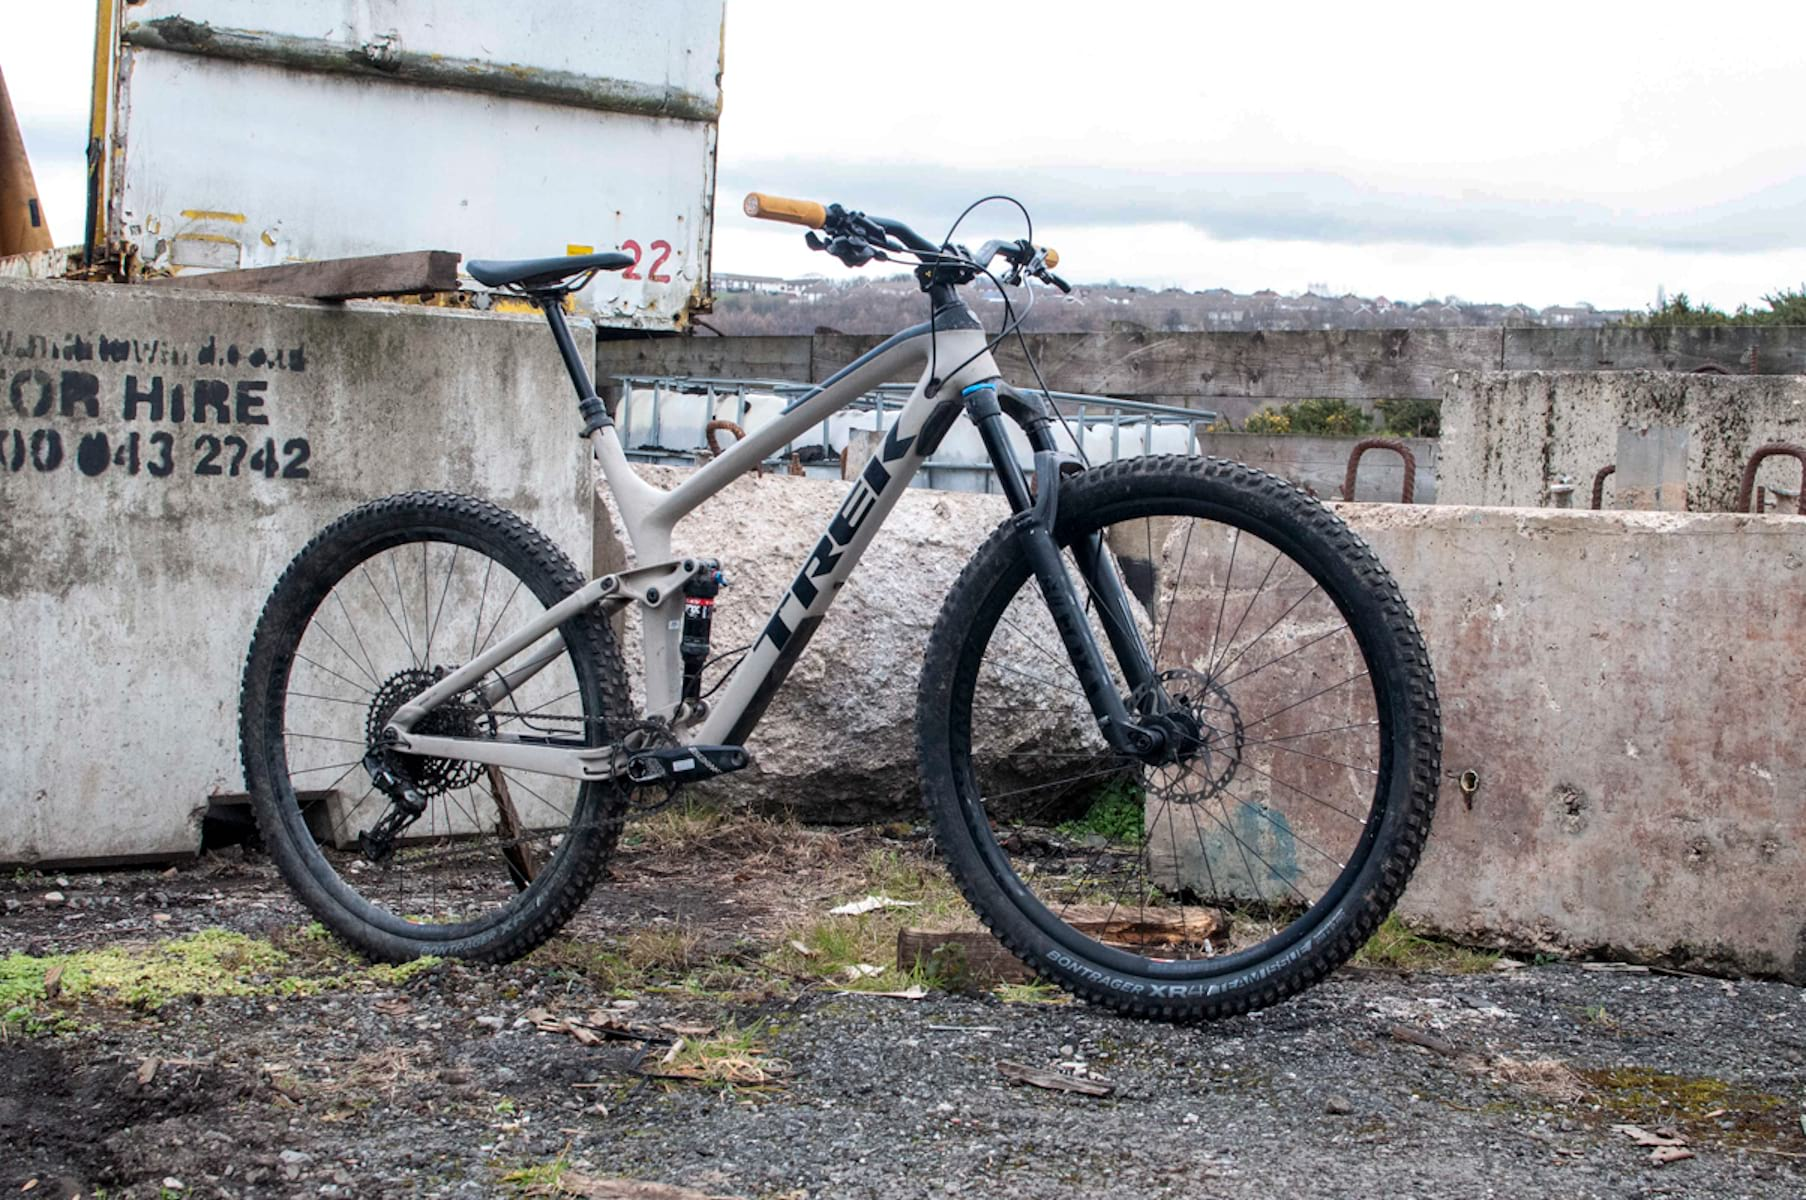 46ff8fbc11e Review | The 2019 Trek Fuel EX 9.7 is a tech-heavy trail bike that ...